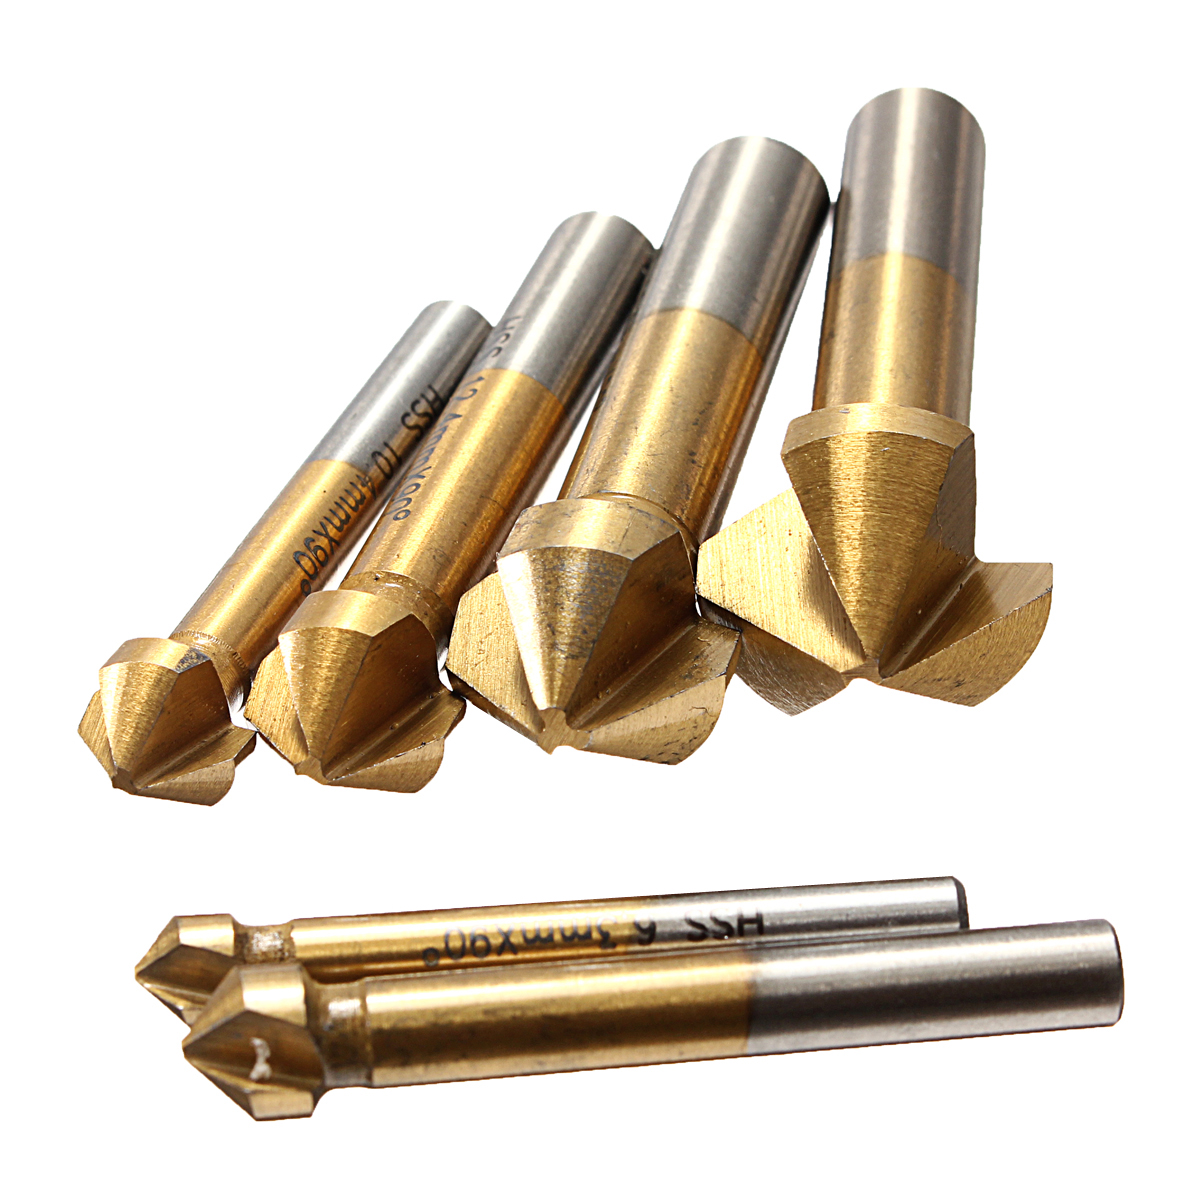 6pcs 6.3-20.5mm 90° 3 Flute Titanium Coated HSS Countersink Drill Bit Set